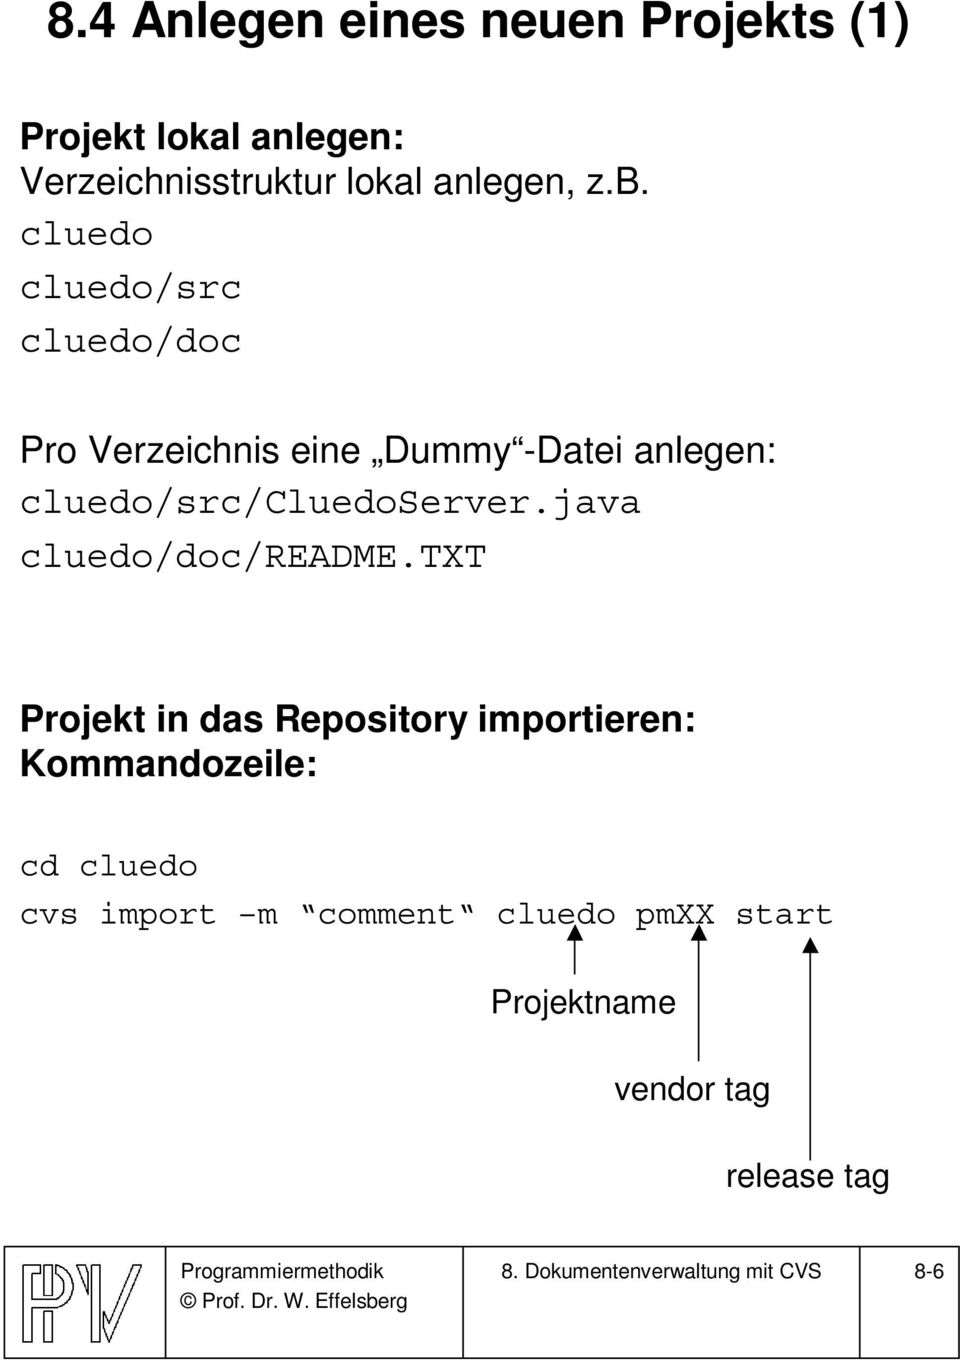 java cluedo/doc/readme.